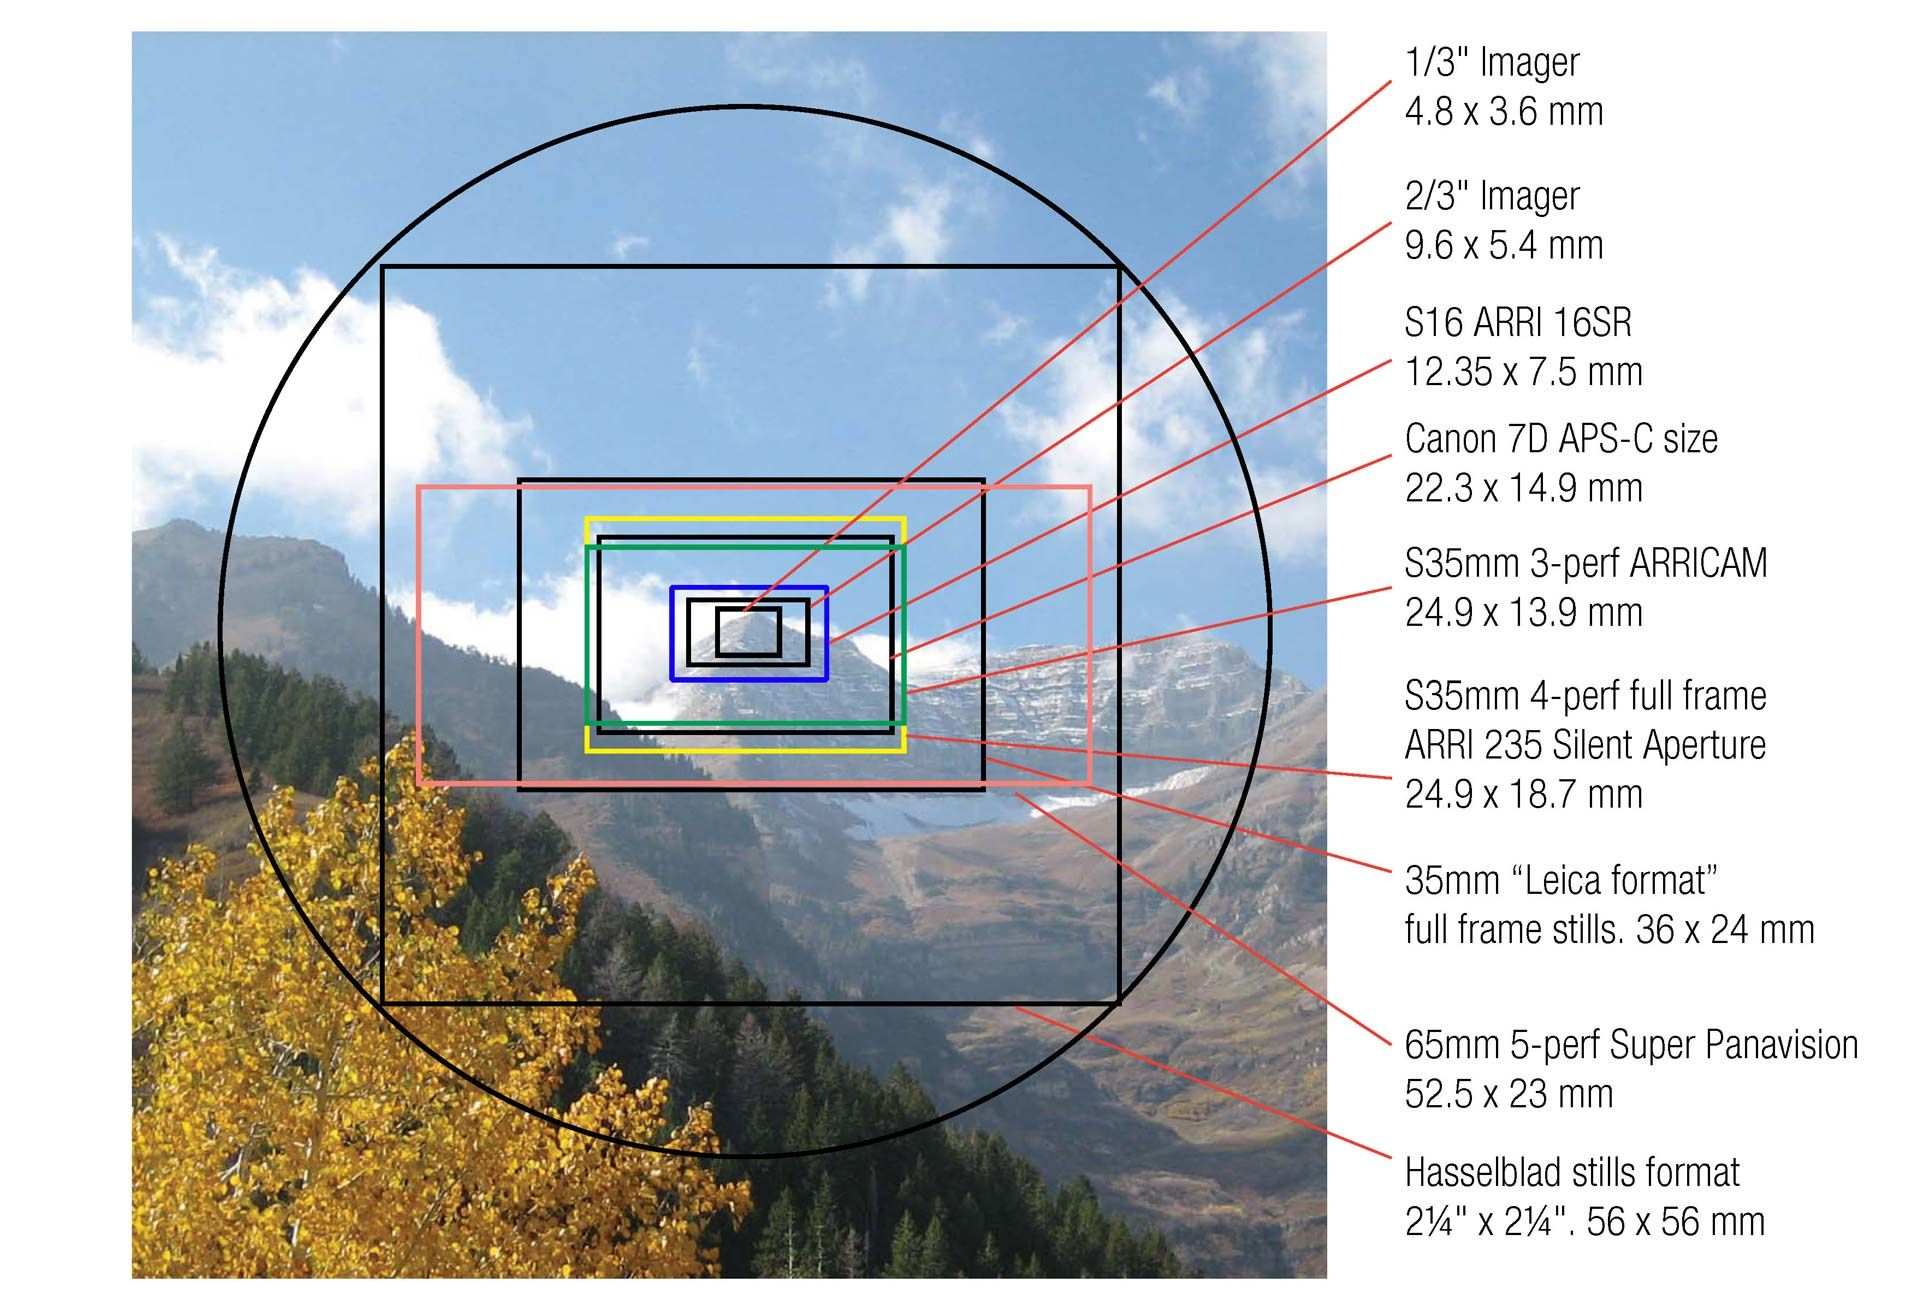 Crop factor full frame is red blue is standard technical crop factor full frame is red blue is standard technical reference pinterest crop factor cameras and photography jeuxipadfo Images